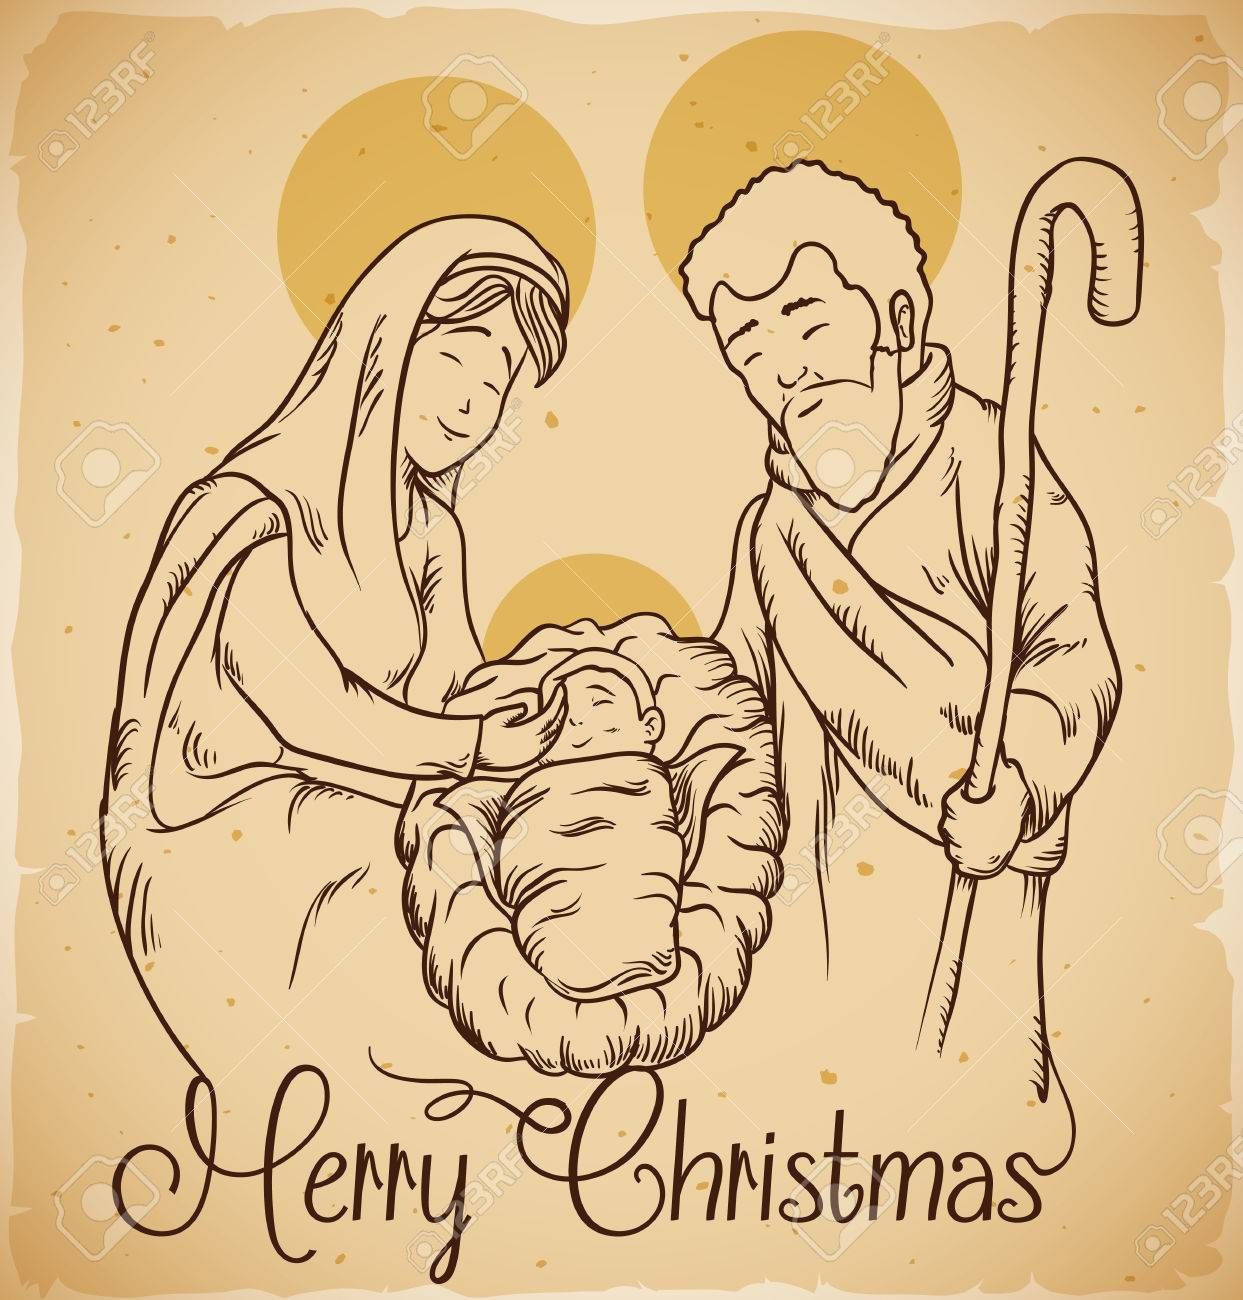 Christmas Jesus Birth Drawing.Nativity Scene With The New Born Jesus Christ And Mary And Joseph